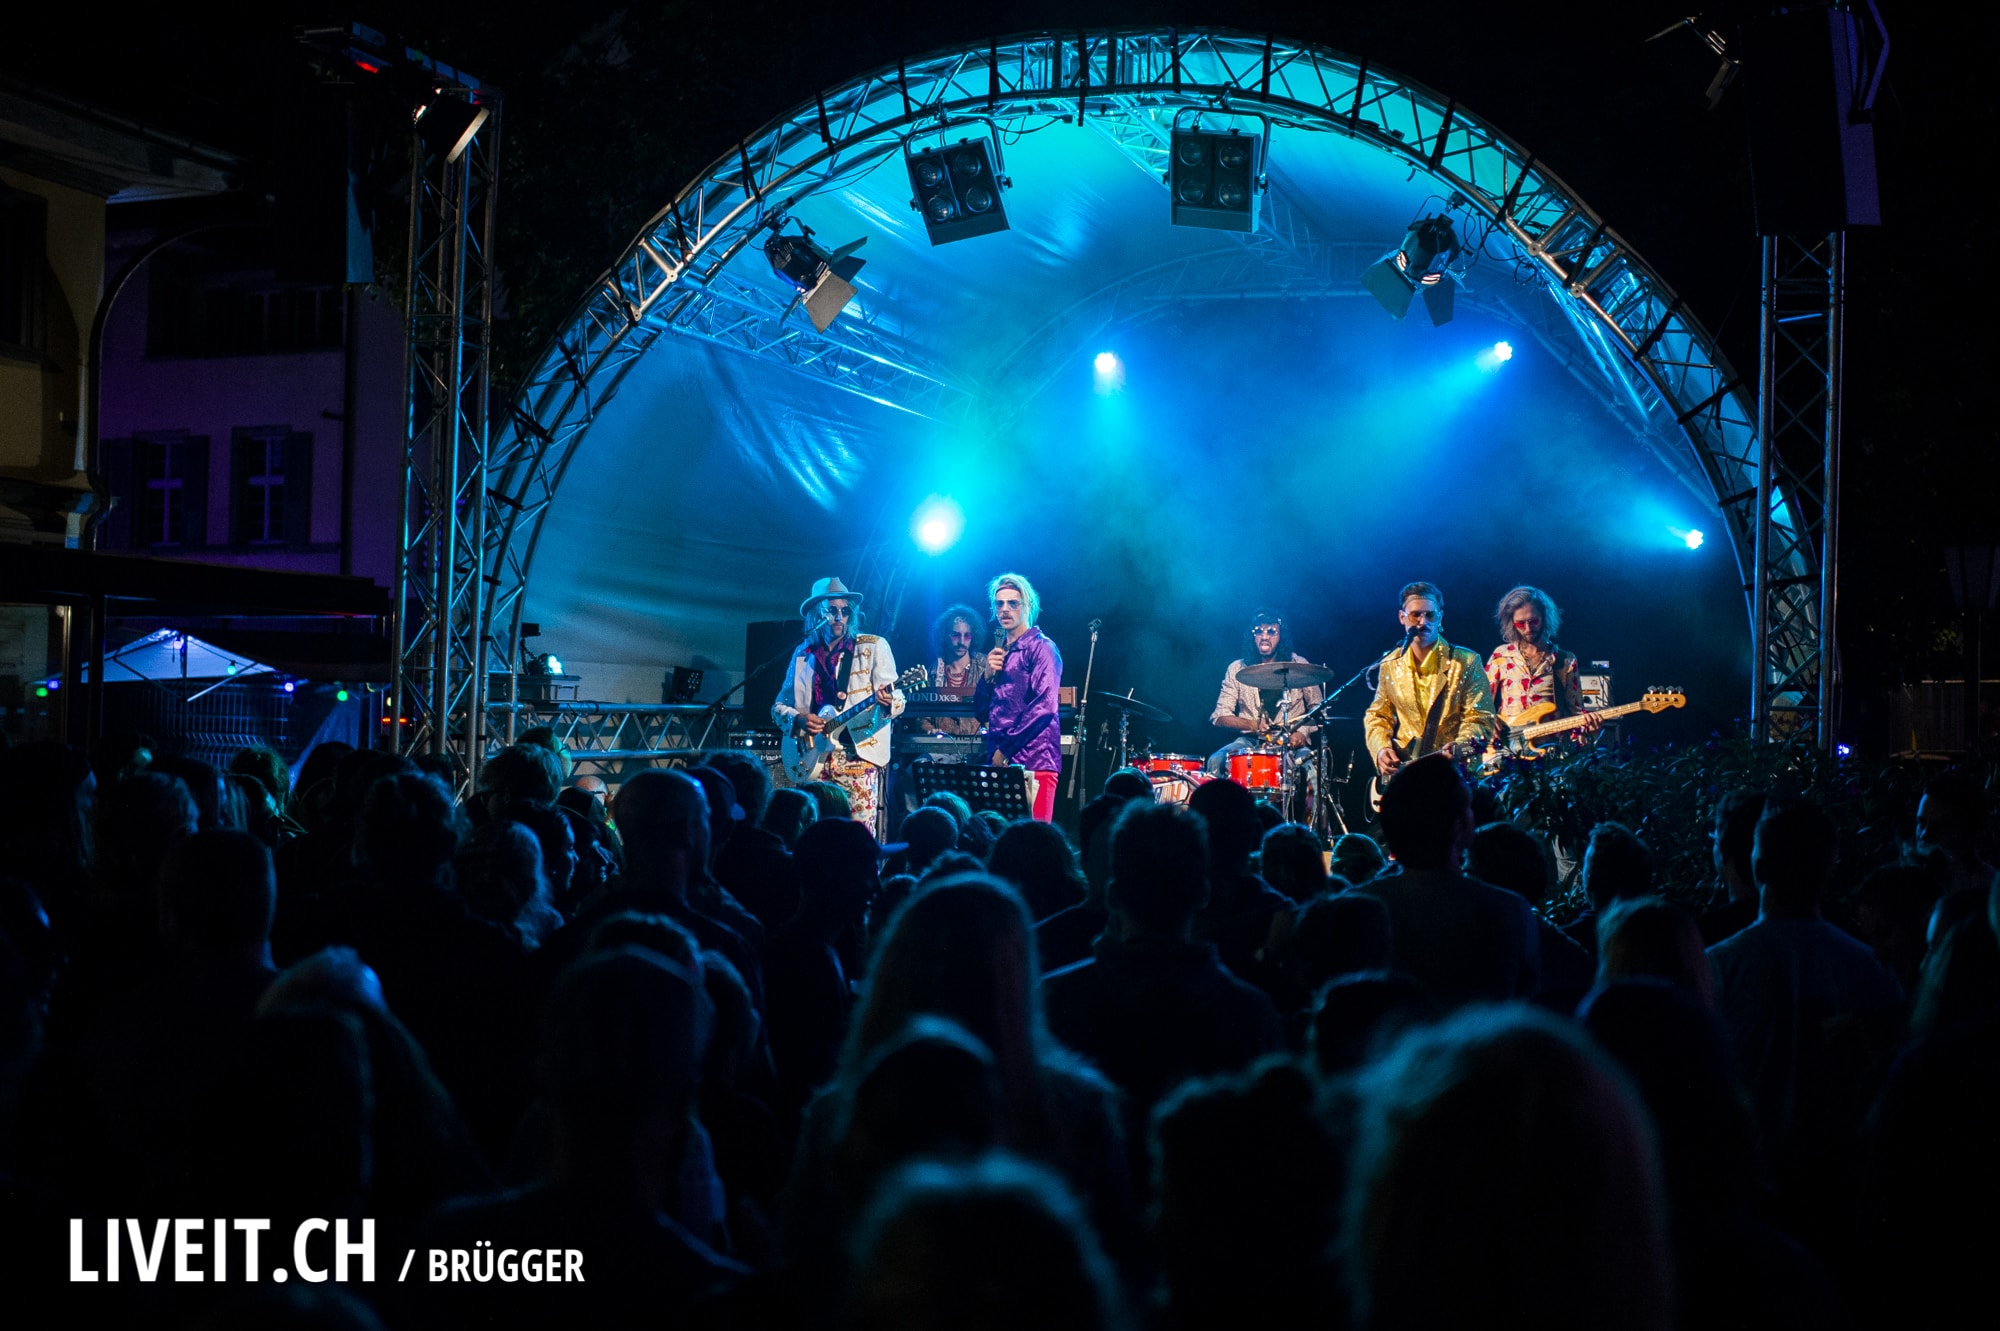 Ocean Orchestra Thunfest 2018 in Thun. (Dominic Bruegger for liveit.ch)